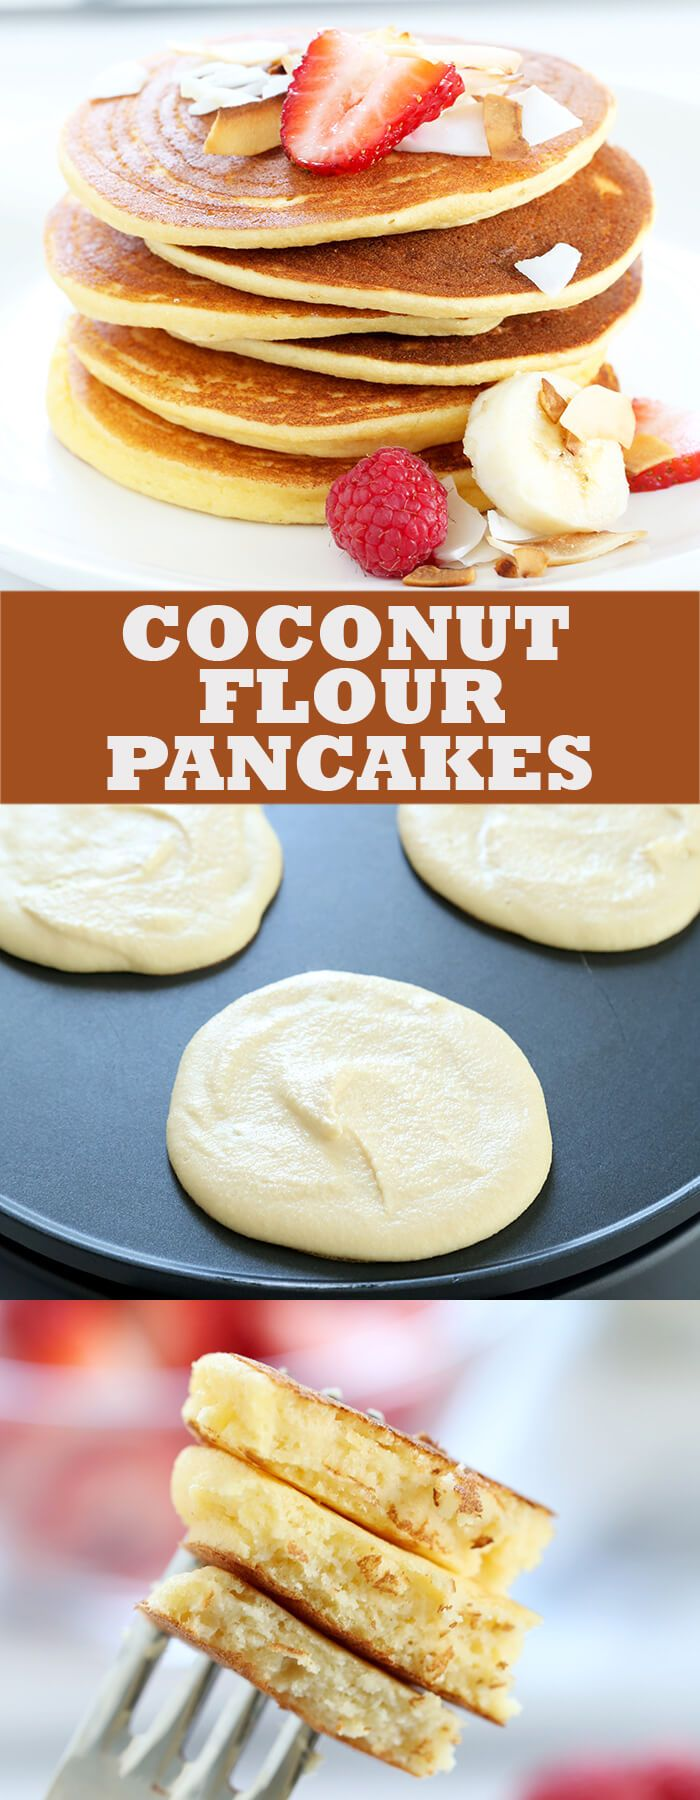 Paleo coconut flour pancakes that are light and fluffy, and made with just a few basic ingredients. A quick and easy, low carb gluten free breakfast!